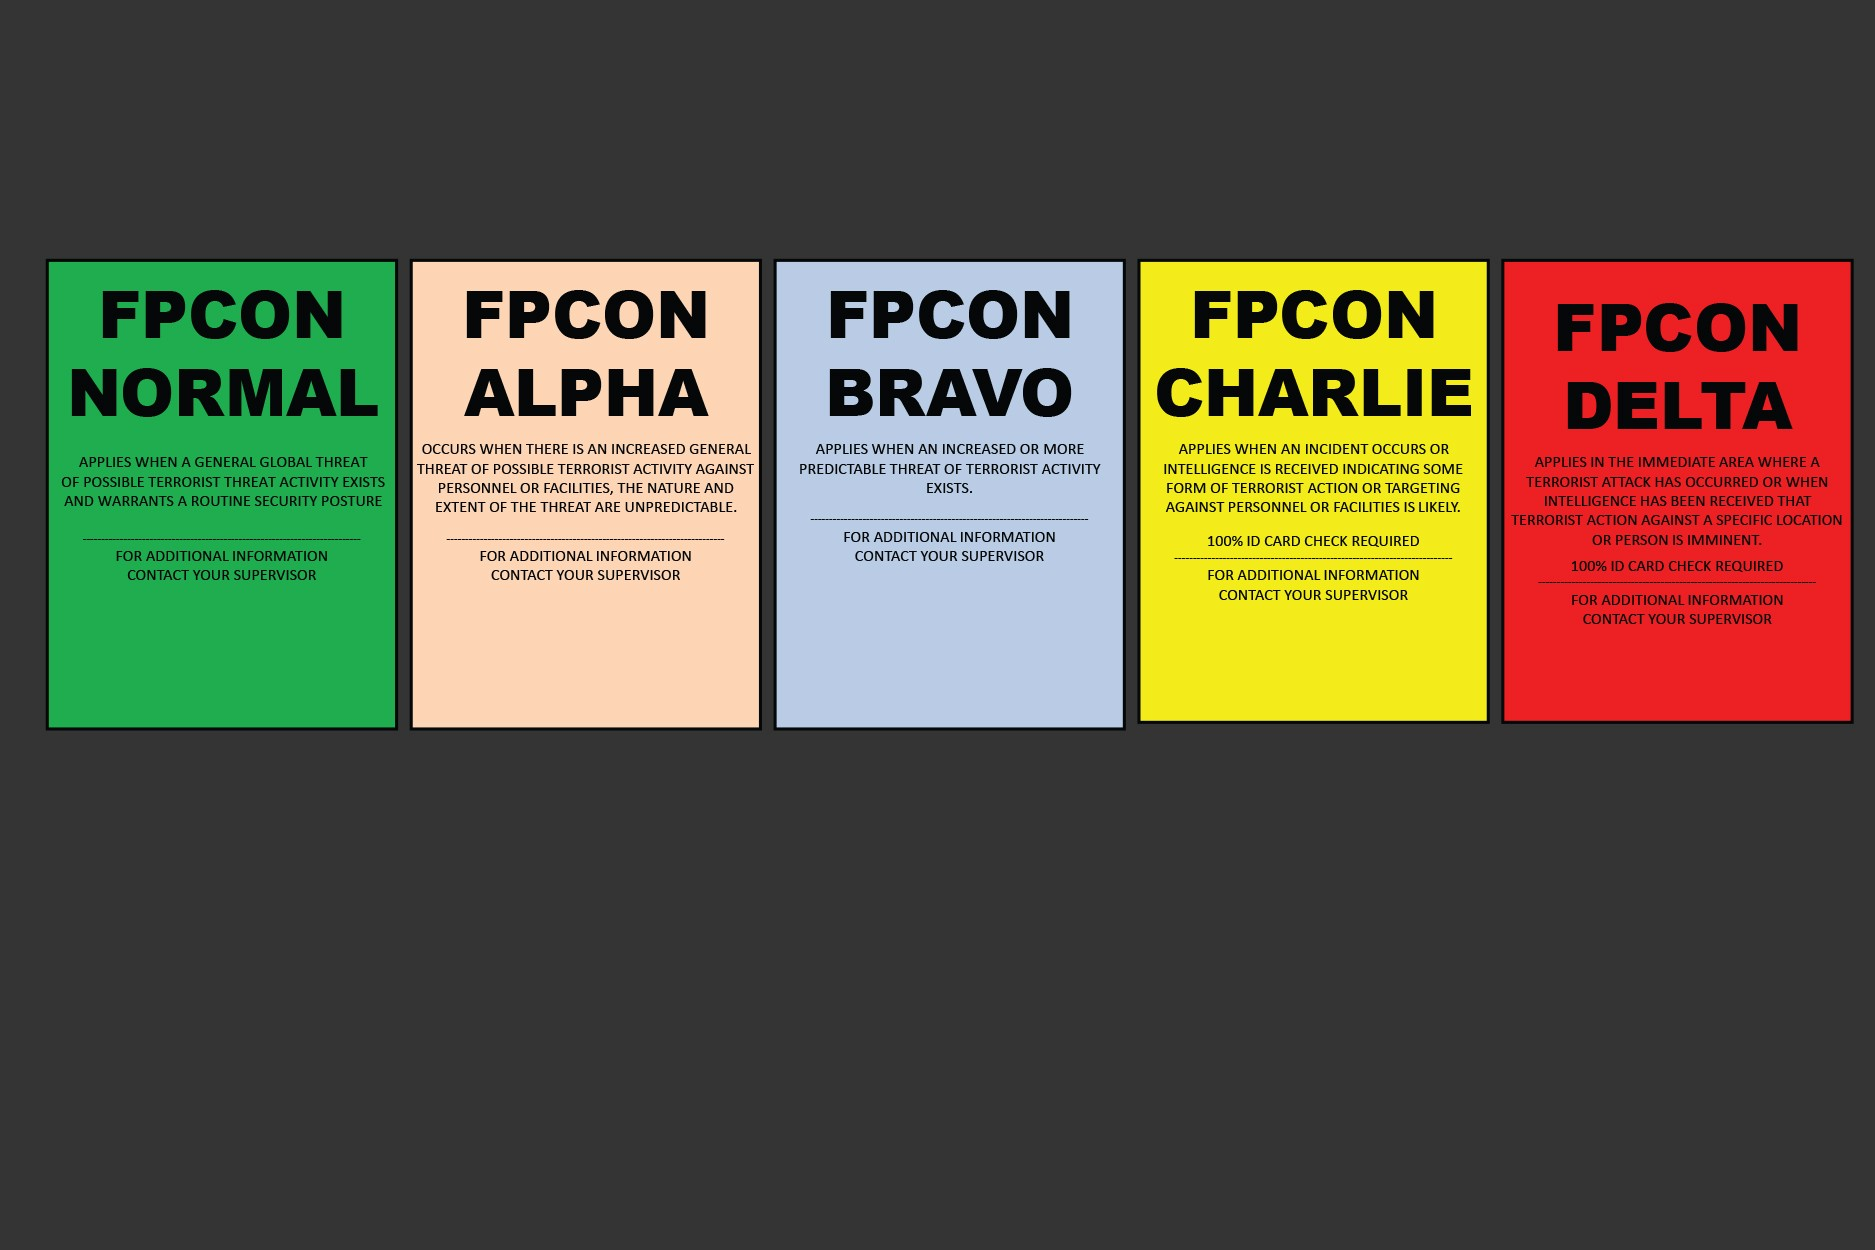 A community member's guide to understanding FPCON | Article